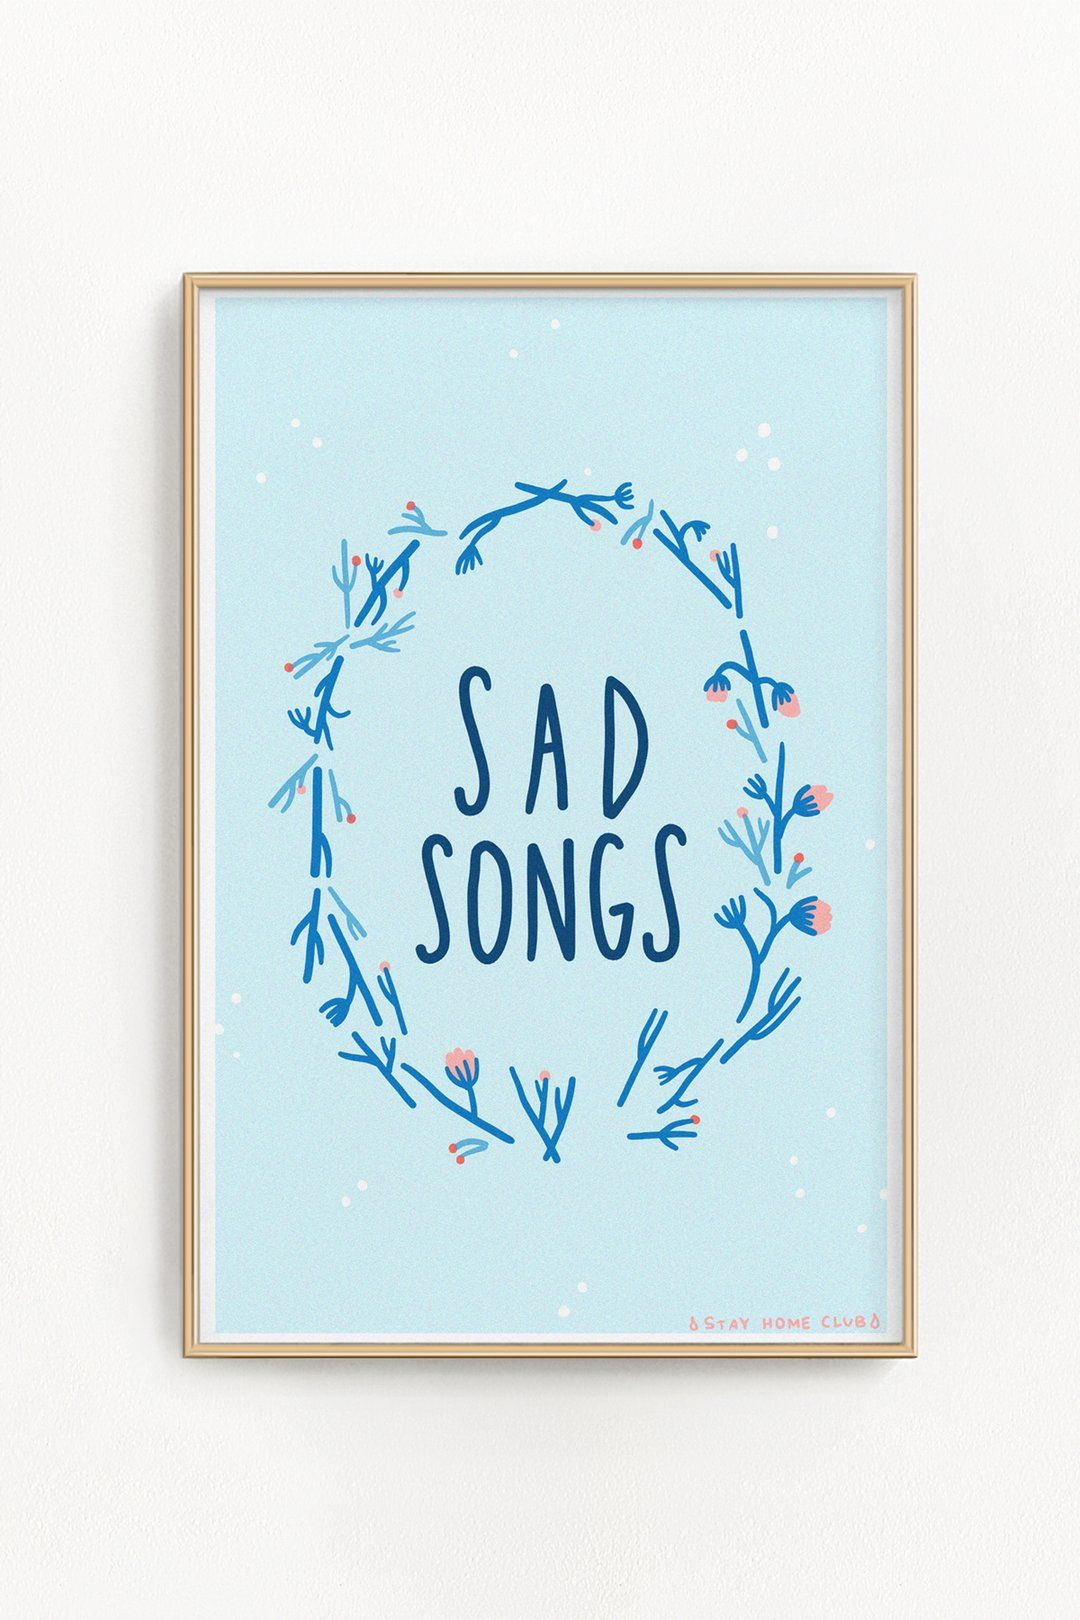 Artwork By Olivia Mew 11 X 17 Risograph Print Printed On White 67lb Cover Weight Paper Ships Flat In A Rigid Cardboa Riso Print Risograph Print Saddest Songs